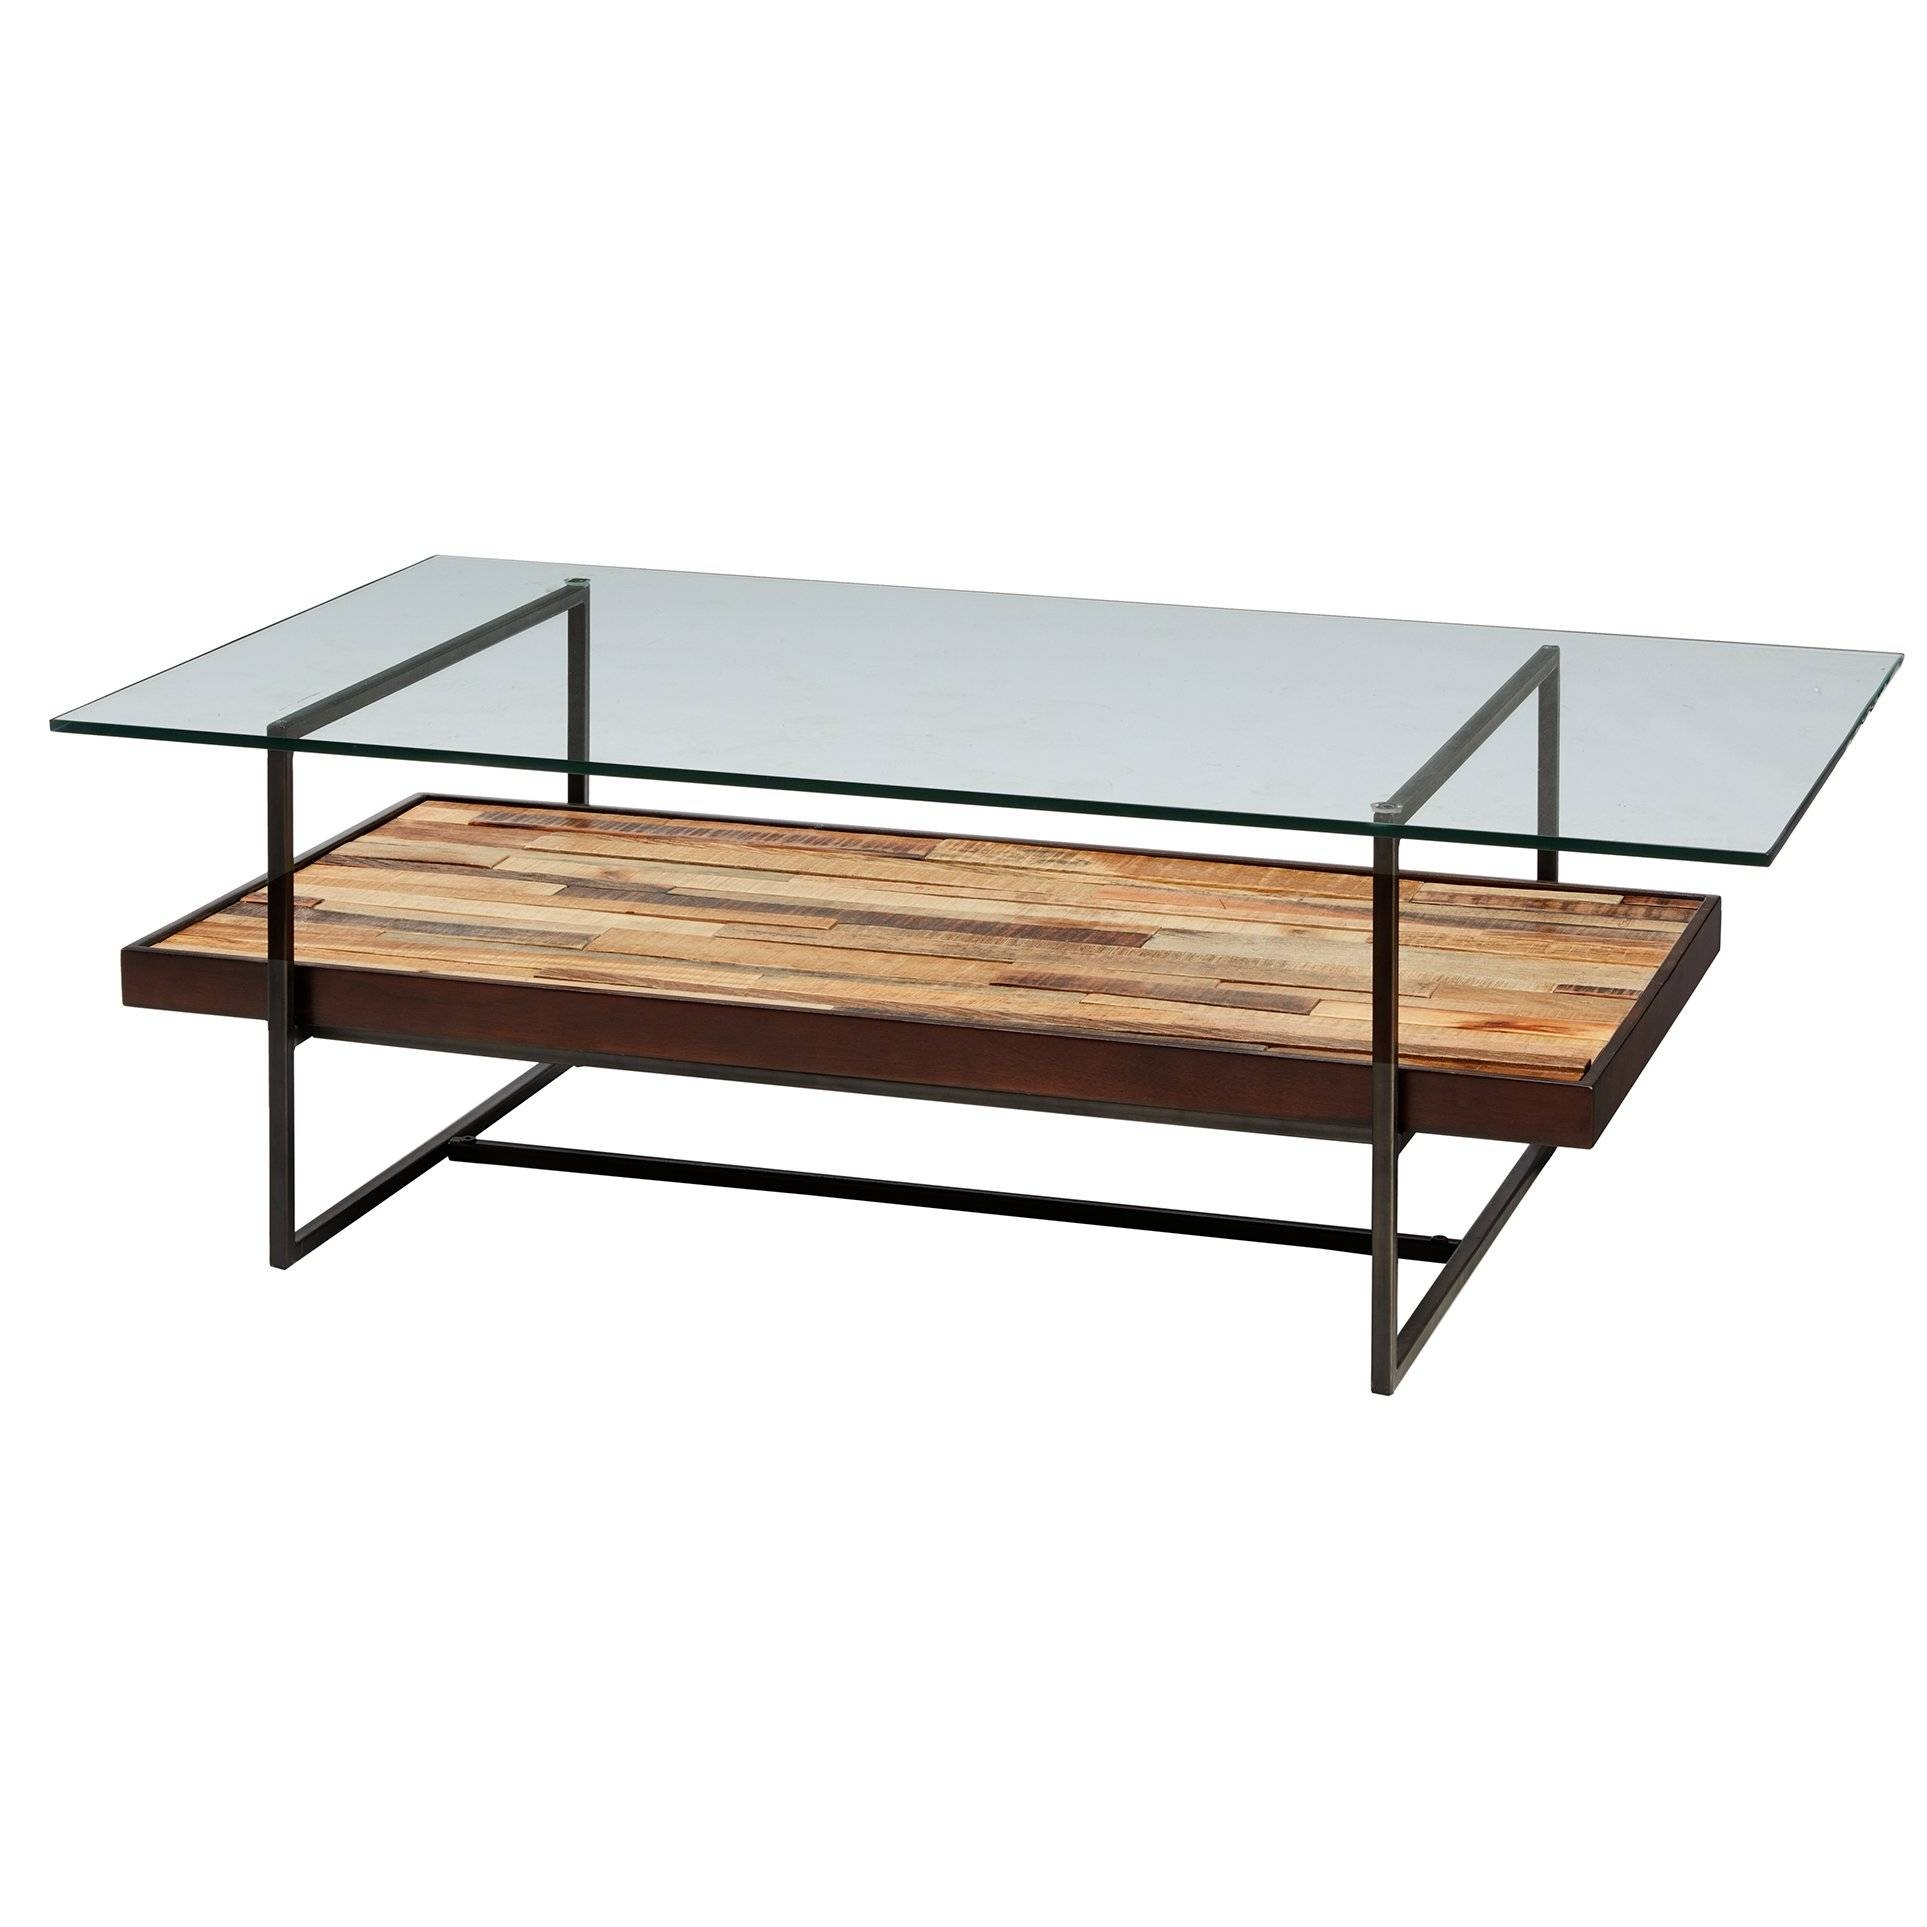 Wayfair Coffee Tables. Hancock Trunk Coffee Table With Lift Top throughout Coffee Tables With Magazine Rack (Image 30 of 30)